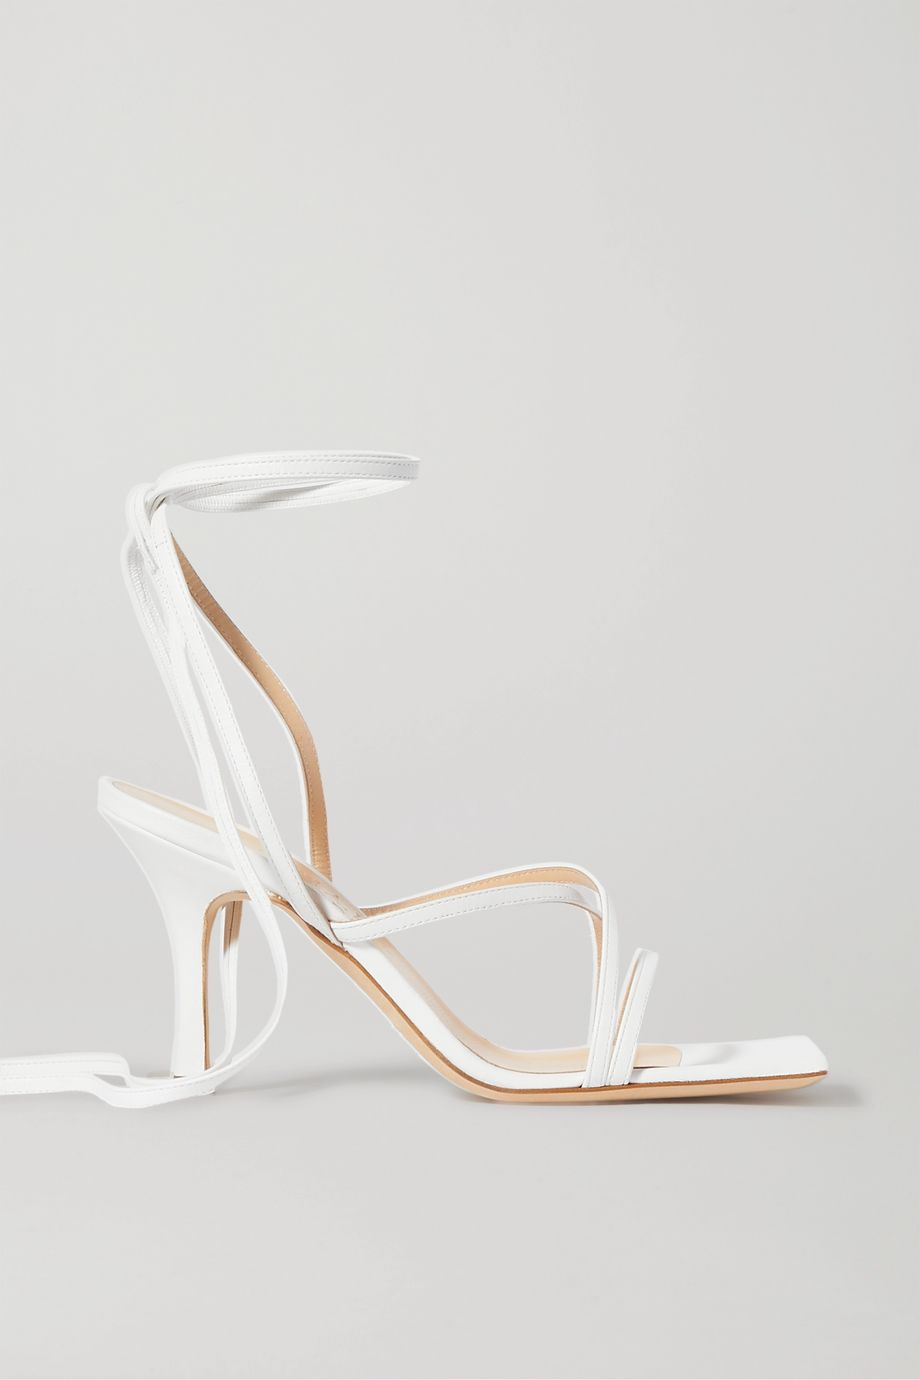 A.W.A.K.E. MODE Ophelia leather sandals